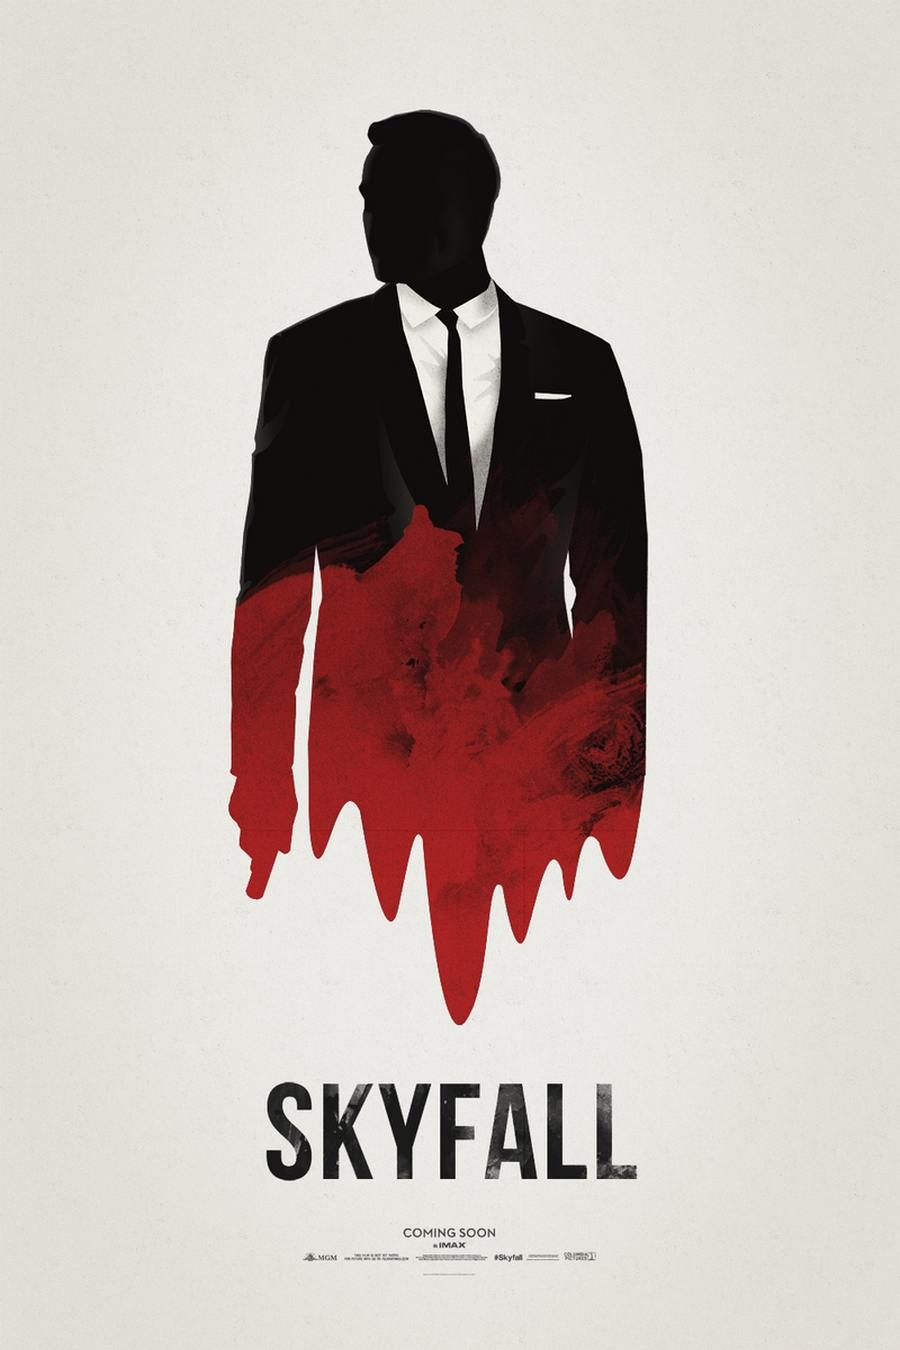 Poster design hd - 15 Simplistic Movie Posters Your Inner Minimalist Will Love